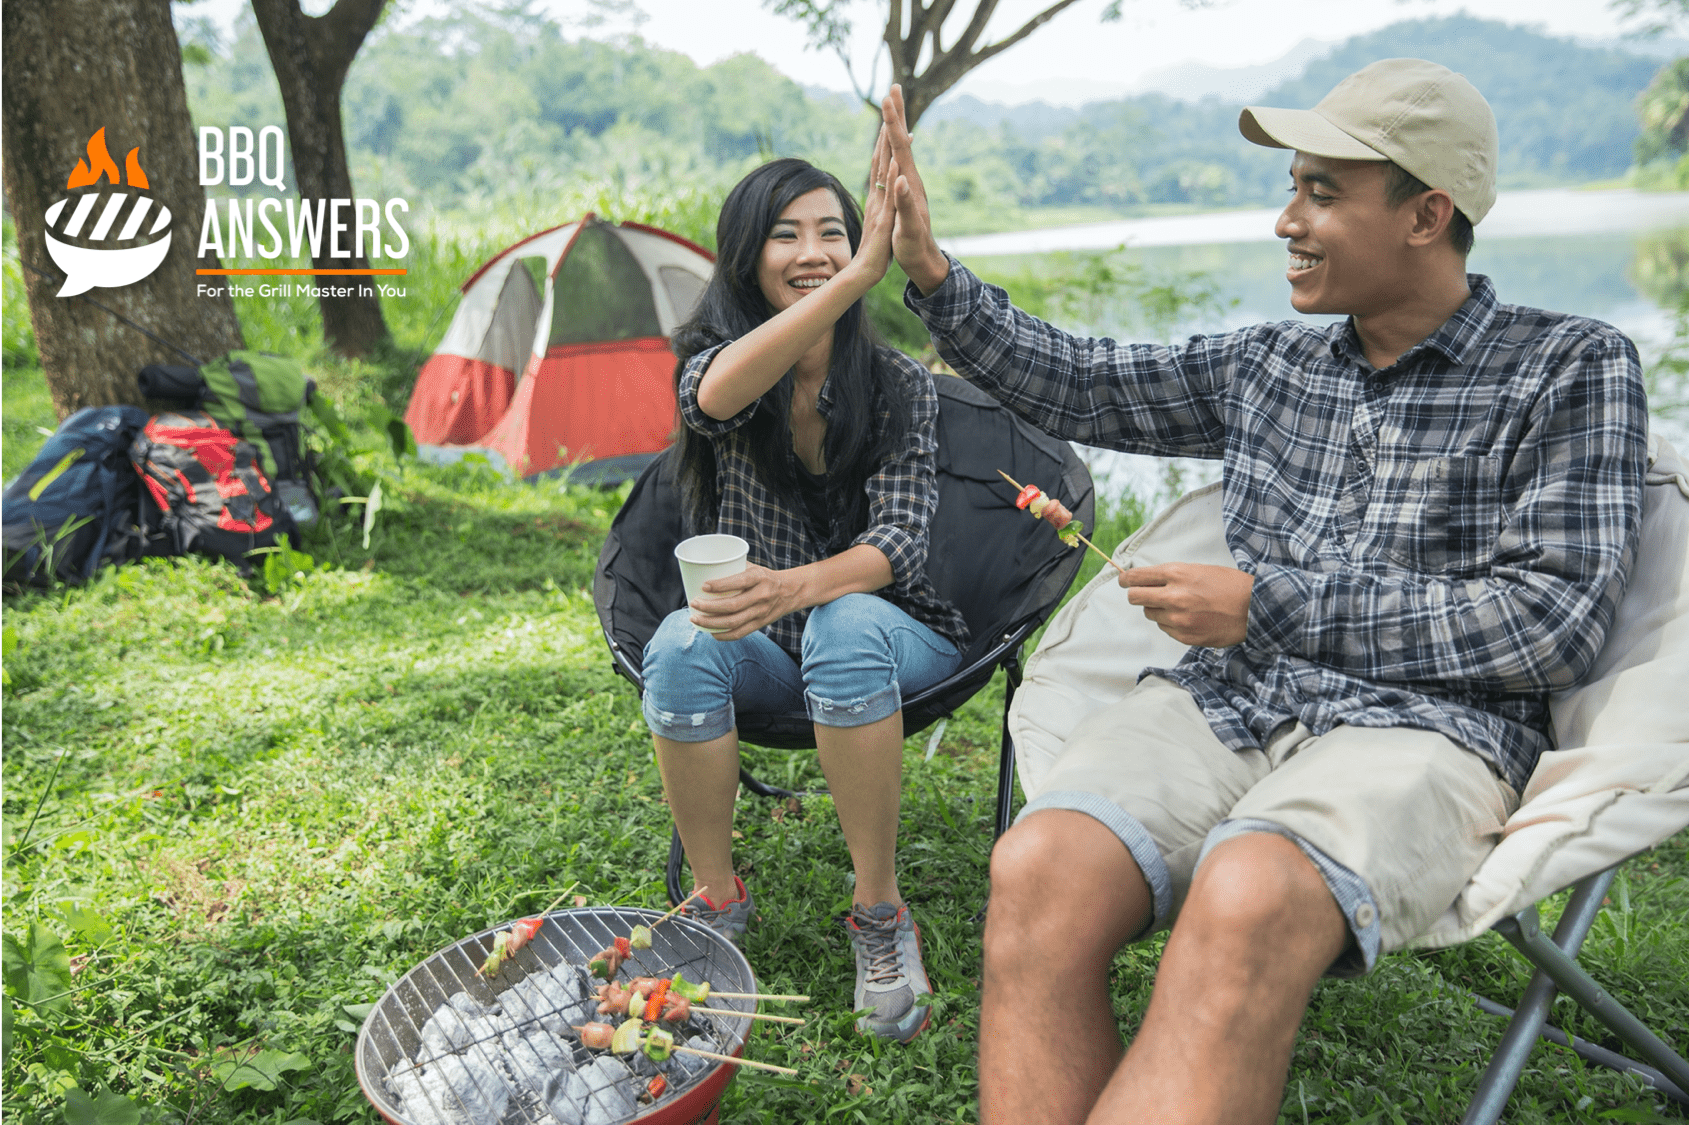 Foldable Chairs and Tent | BBQanswers